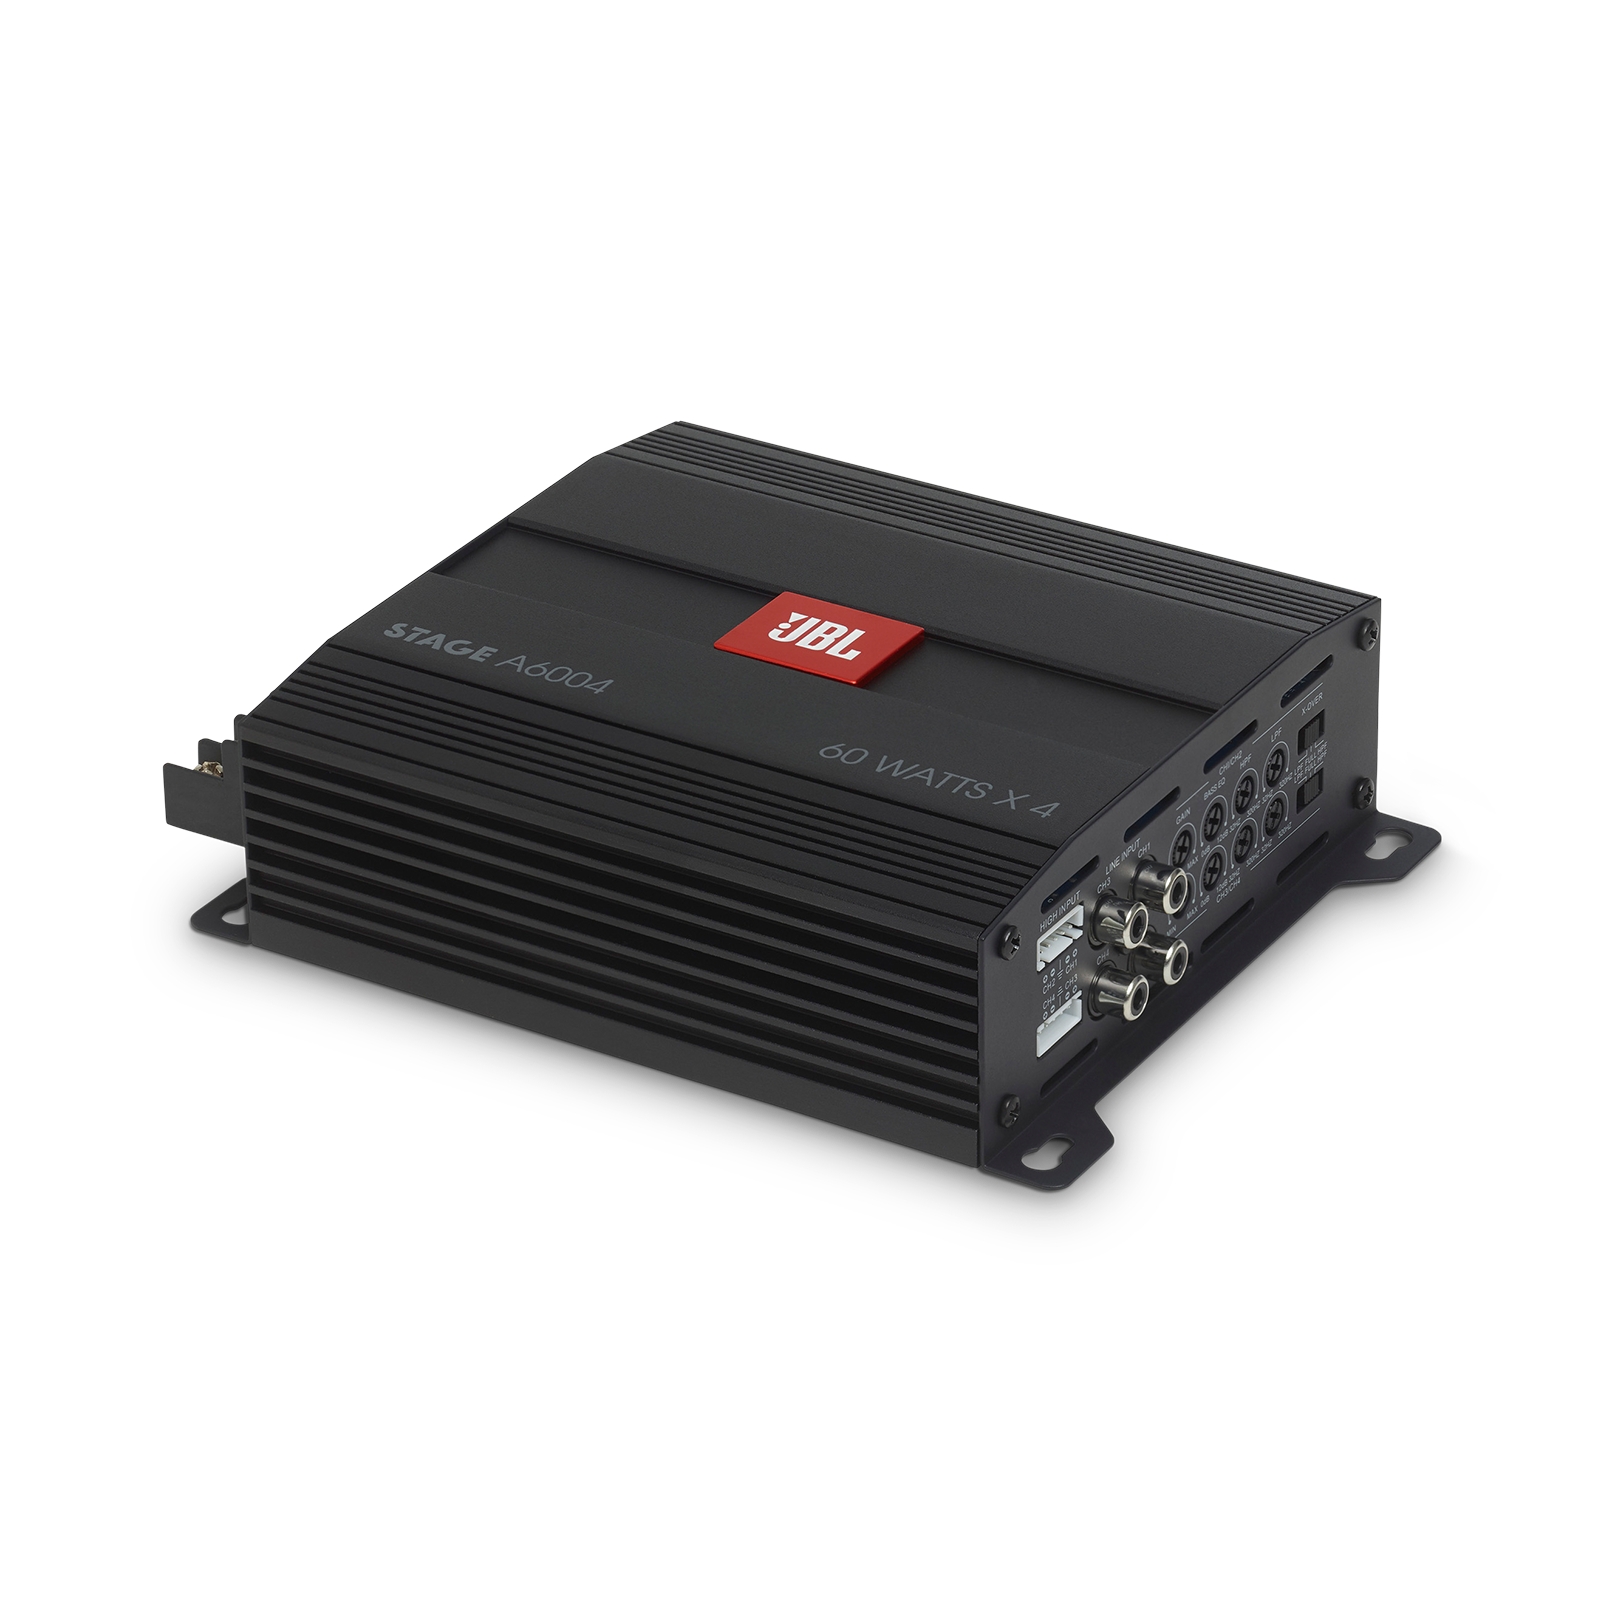 JBL Stage Amplifier A6004 - Black - Class D Car Audio Amplifier - Hero